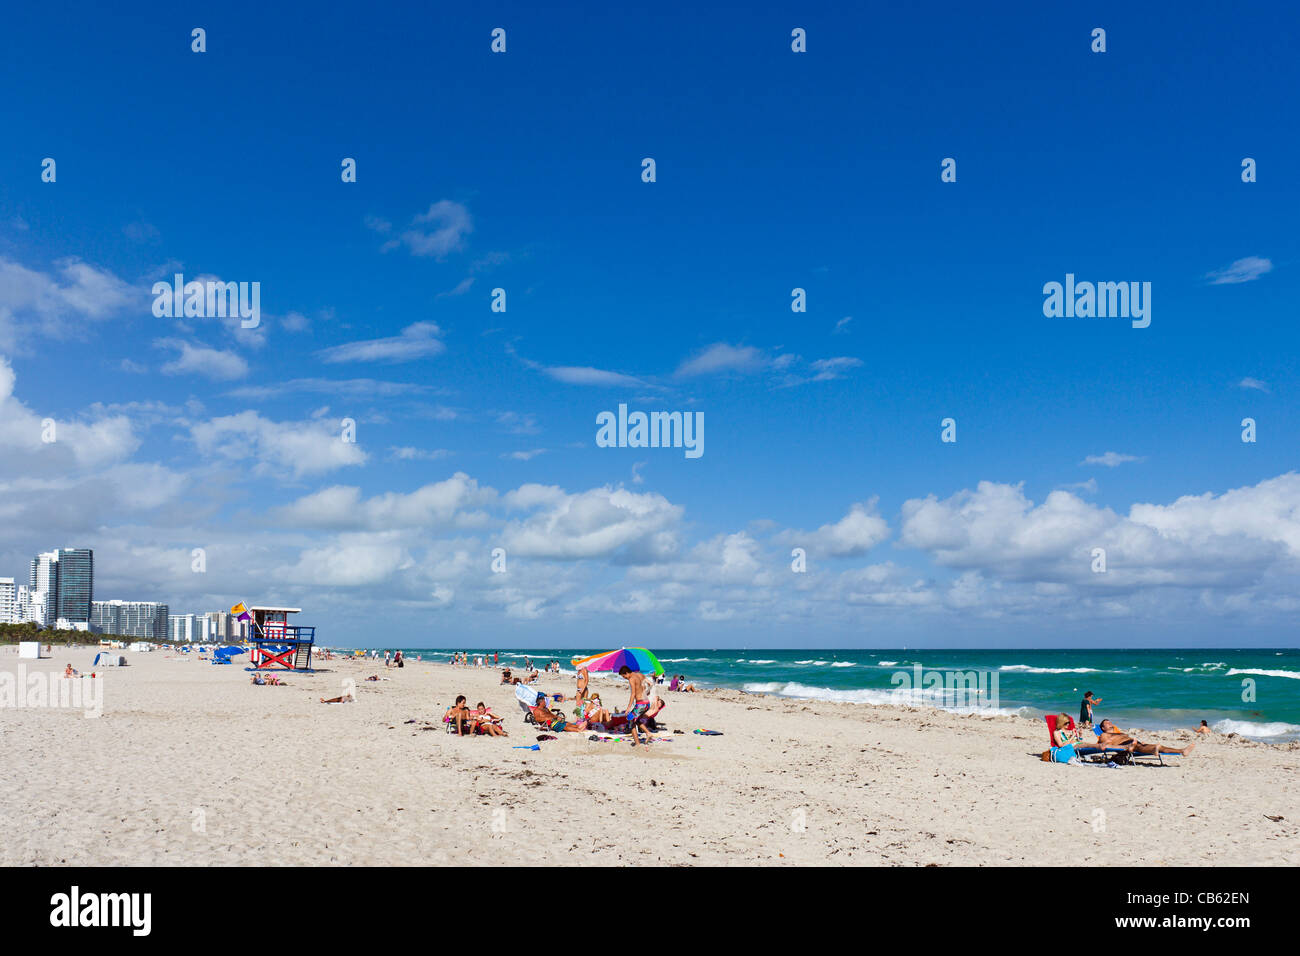 Tide chart cairns choice image free any chart examples high tide miami beach gold coast best beach on the world 2017 temporary tidal flooding still geenschuldenfo Choice Image